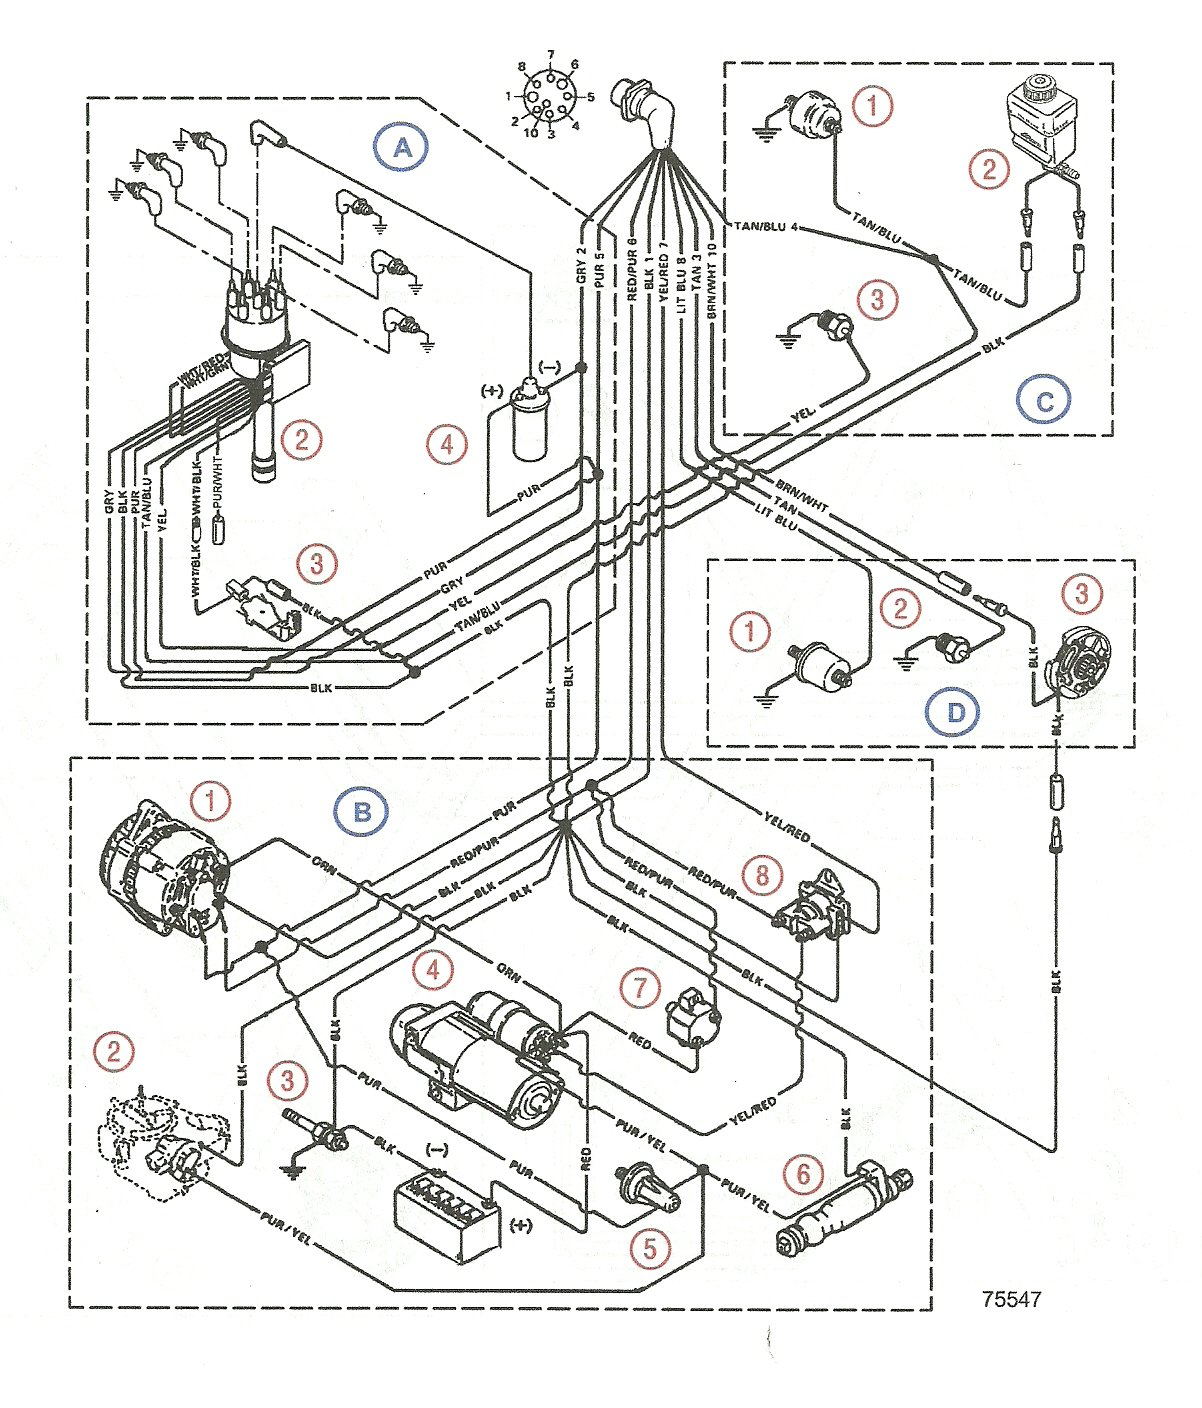 2011 04 02_133428_scan0002 have mercruiser '08, 5 0, 260 hp have lost power to ignition Mercruiser SmartCraft Wiring -Diagram at nearapp.co